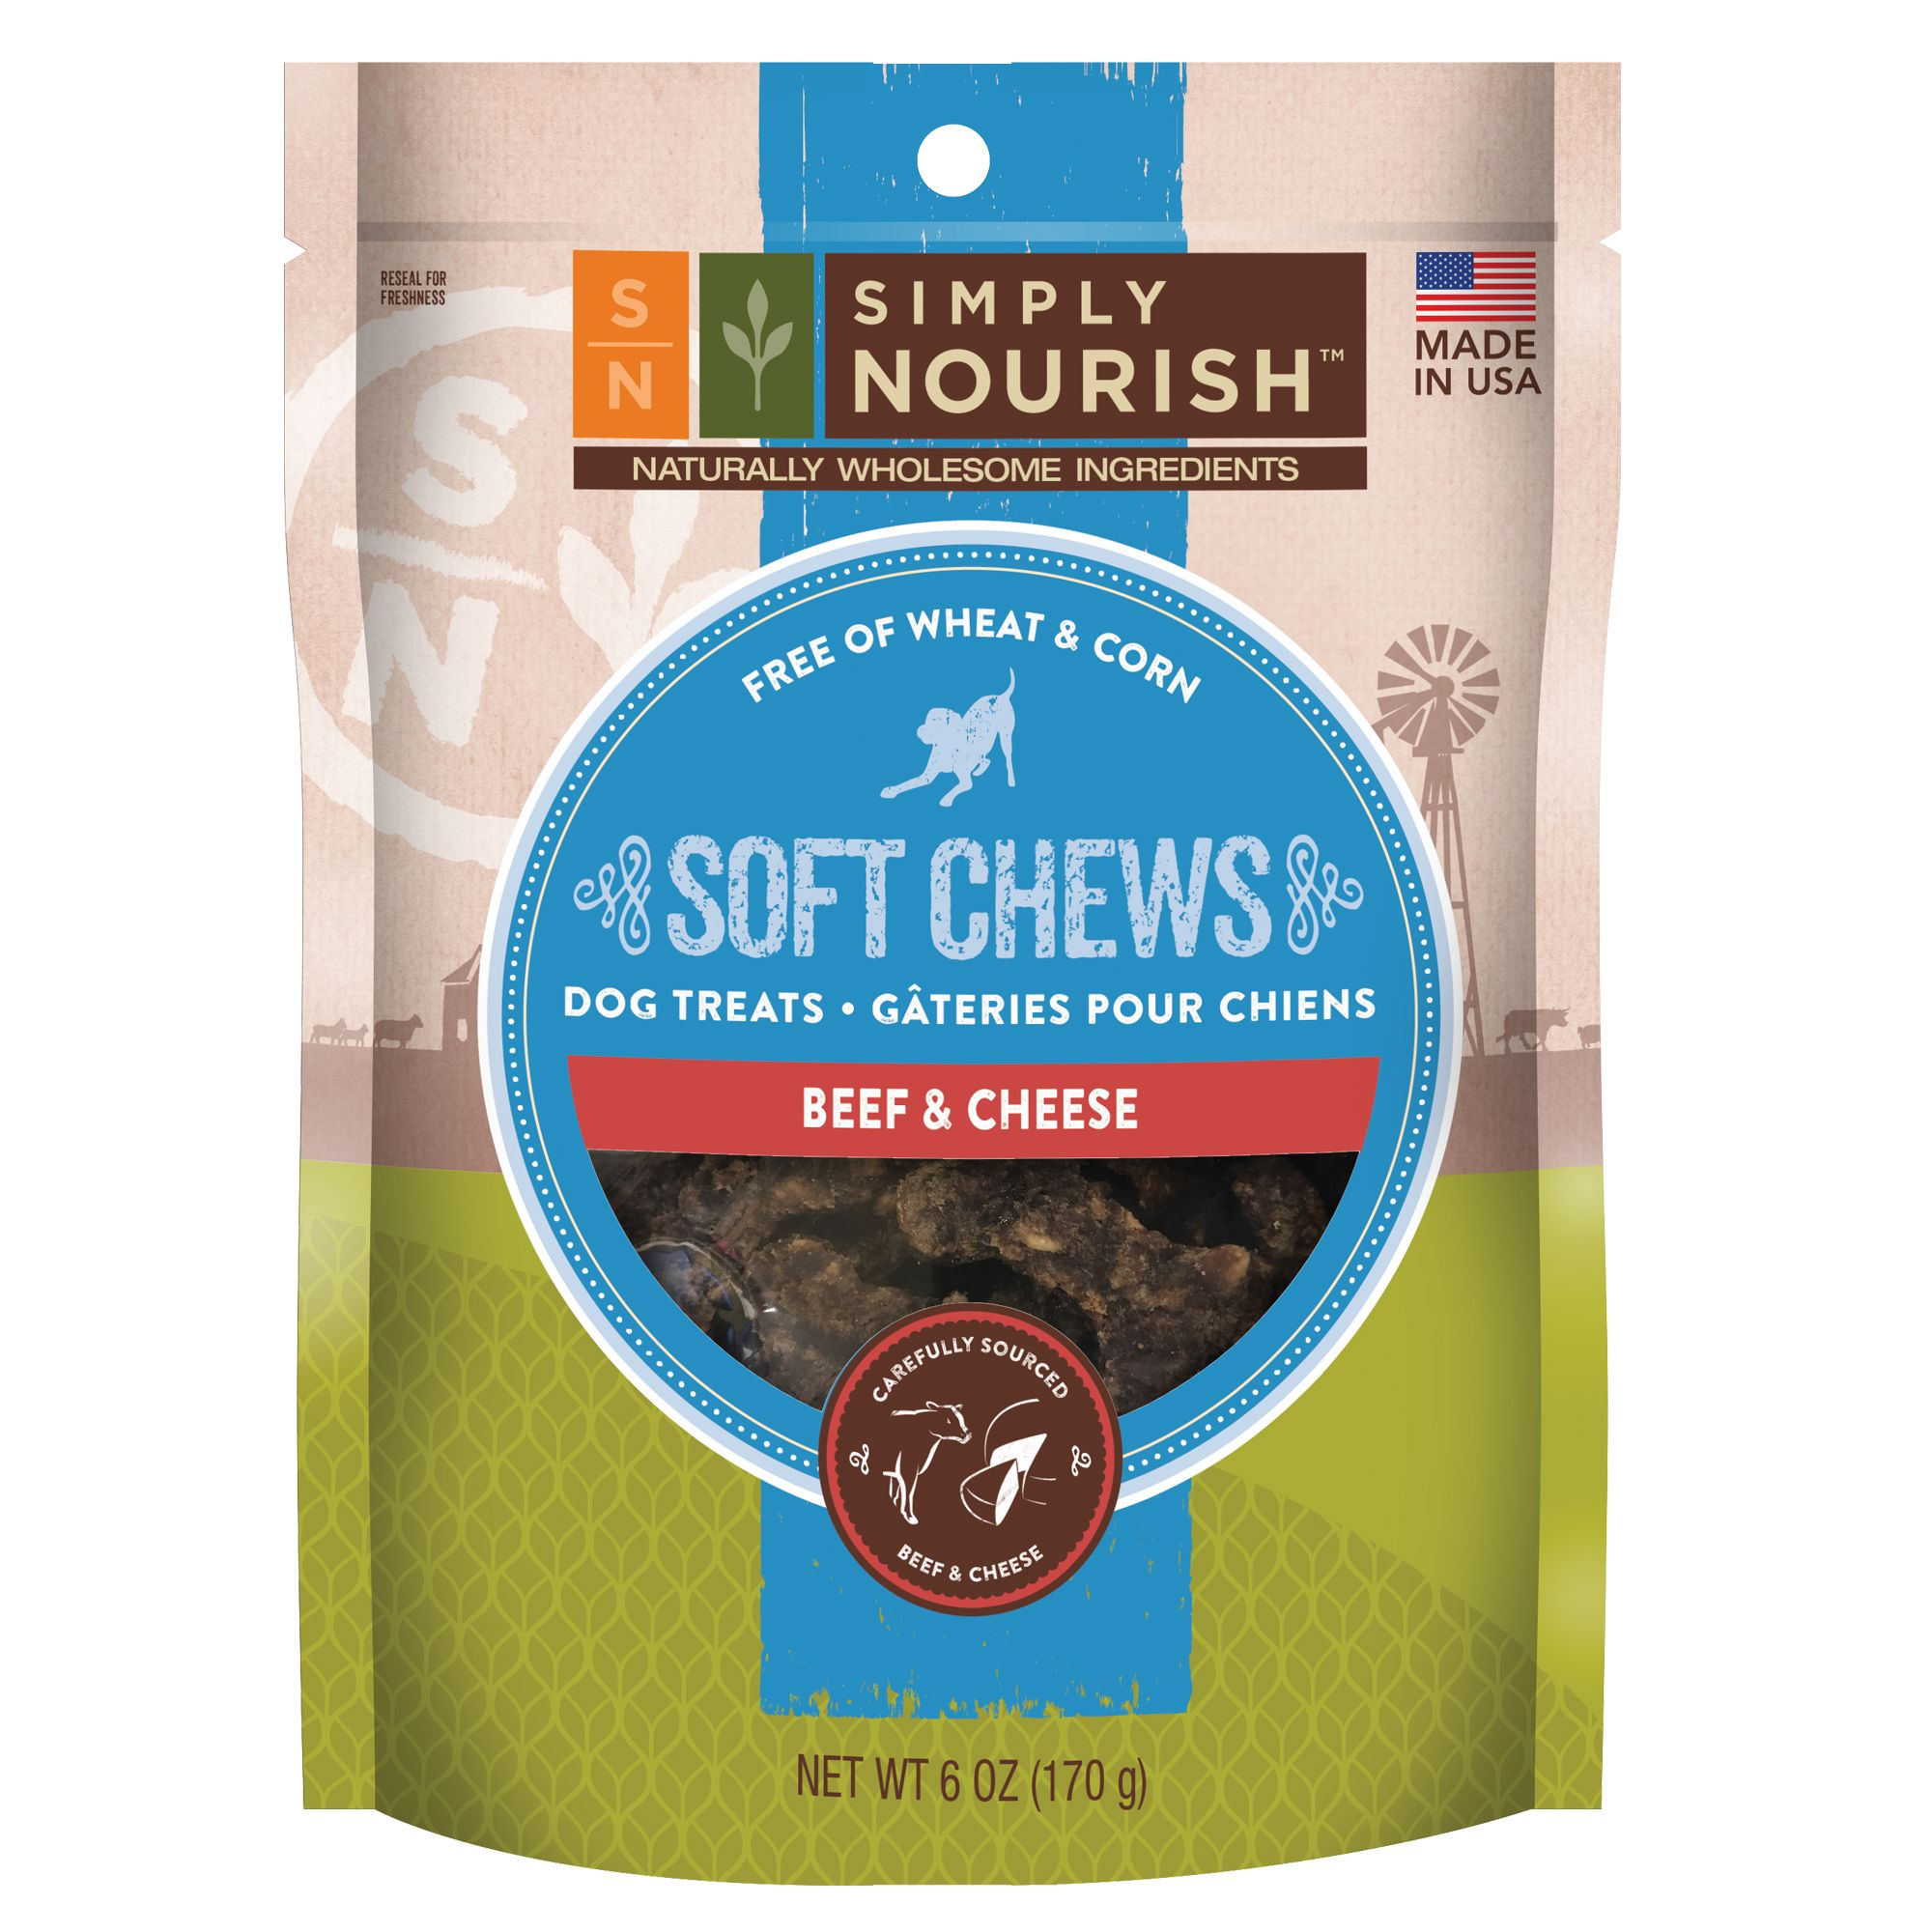 Simply Nourish, Soft Chews Dog Treat - Natural, Beef and Cheese size: 6 Oz, Chicken & Cheese, Adult 5266492